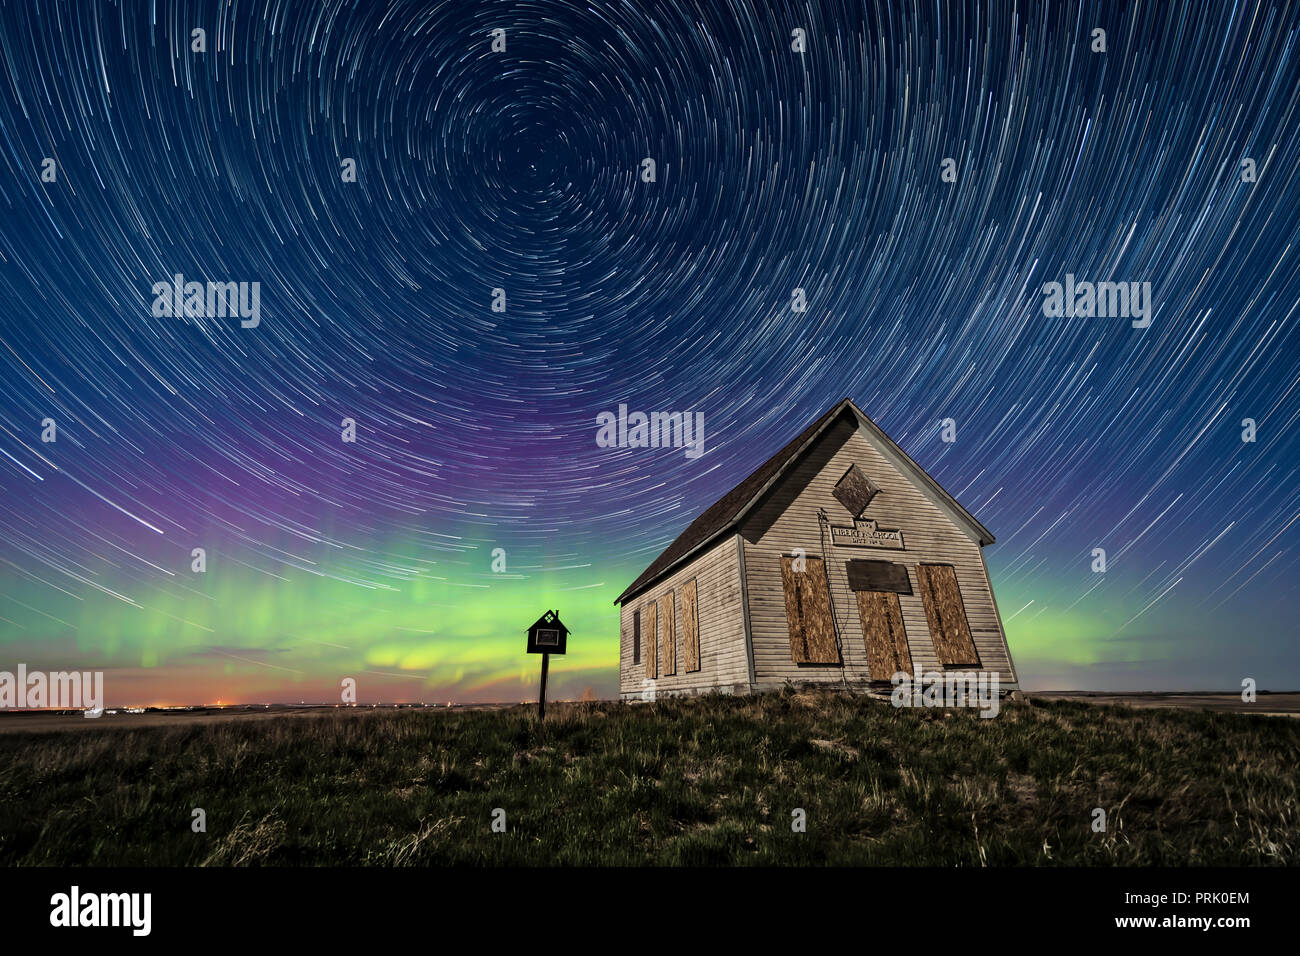 The 1910 Liberty Schoolhouse, a classic pioneer one-room school, on the Alberta prairie under the stars on a spring night, with circumpolar star trail Stock Photo